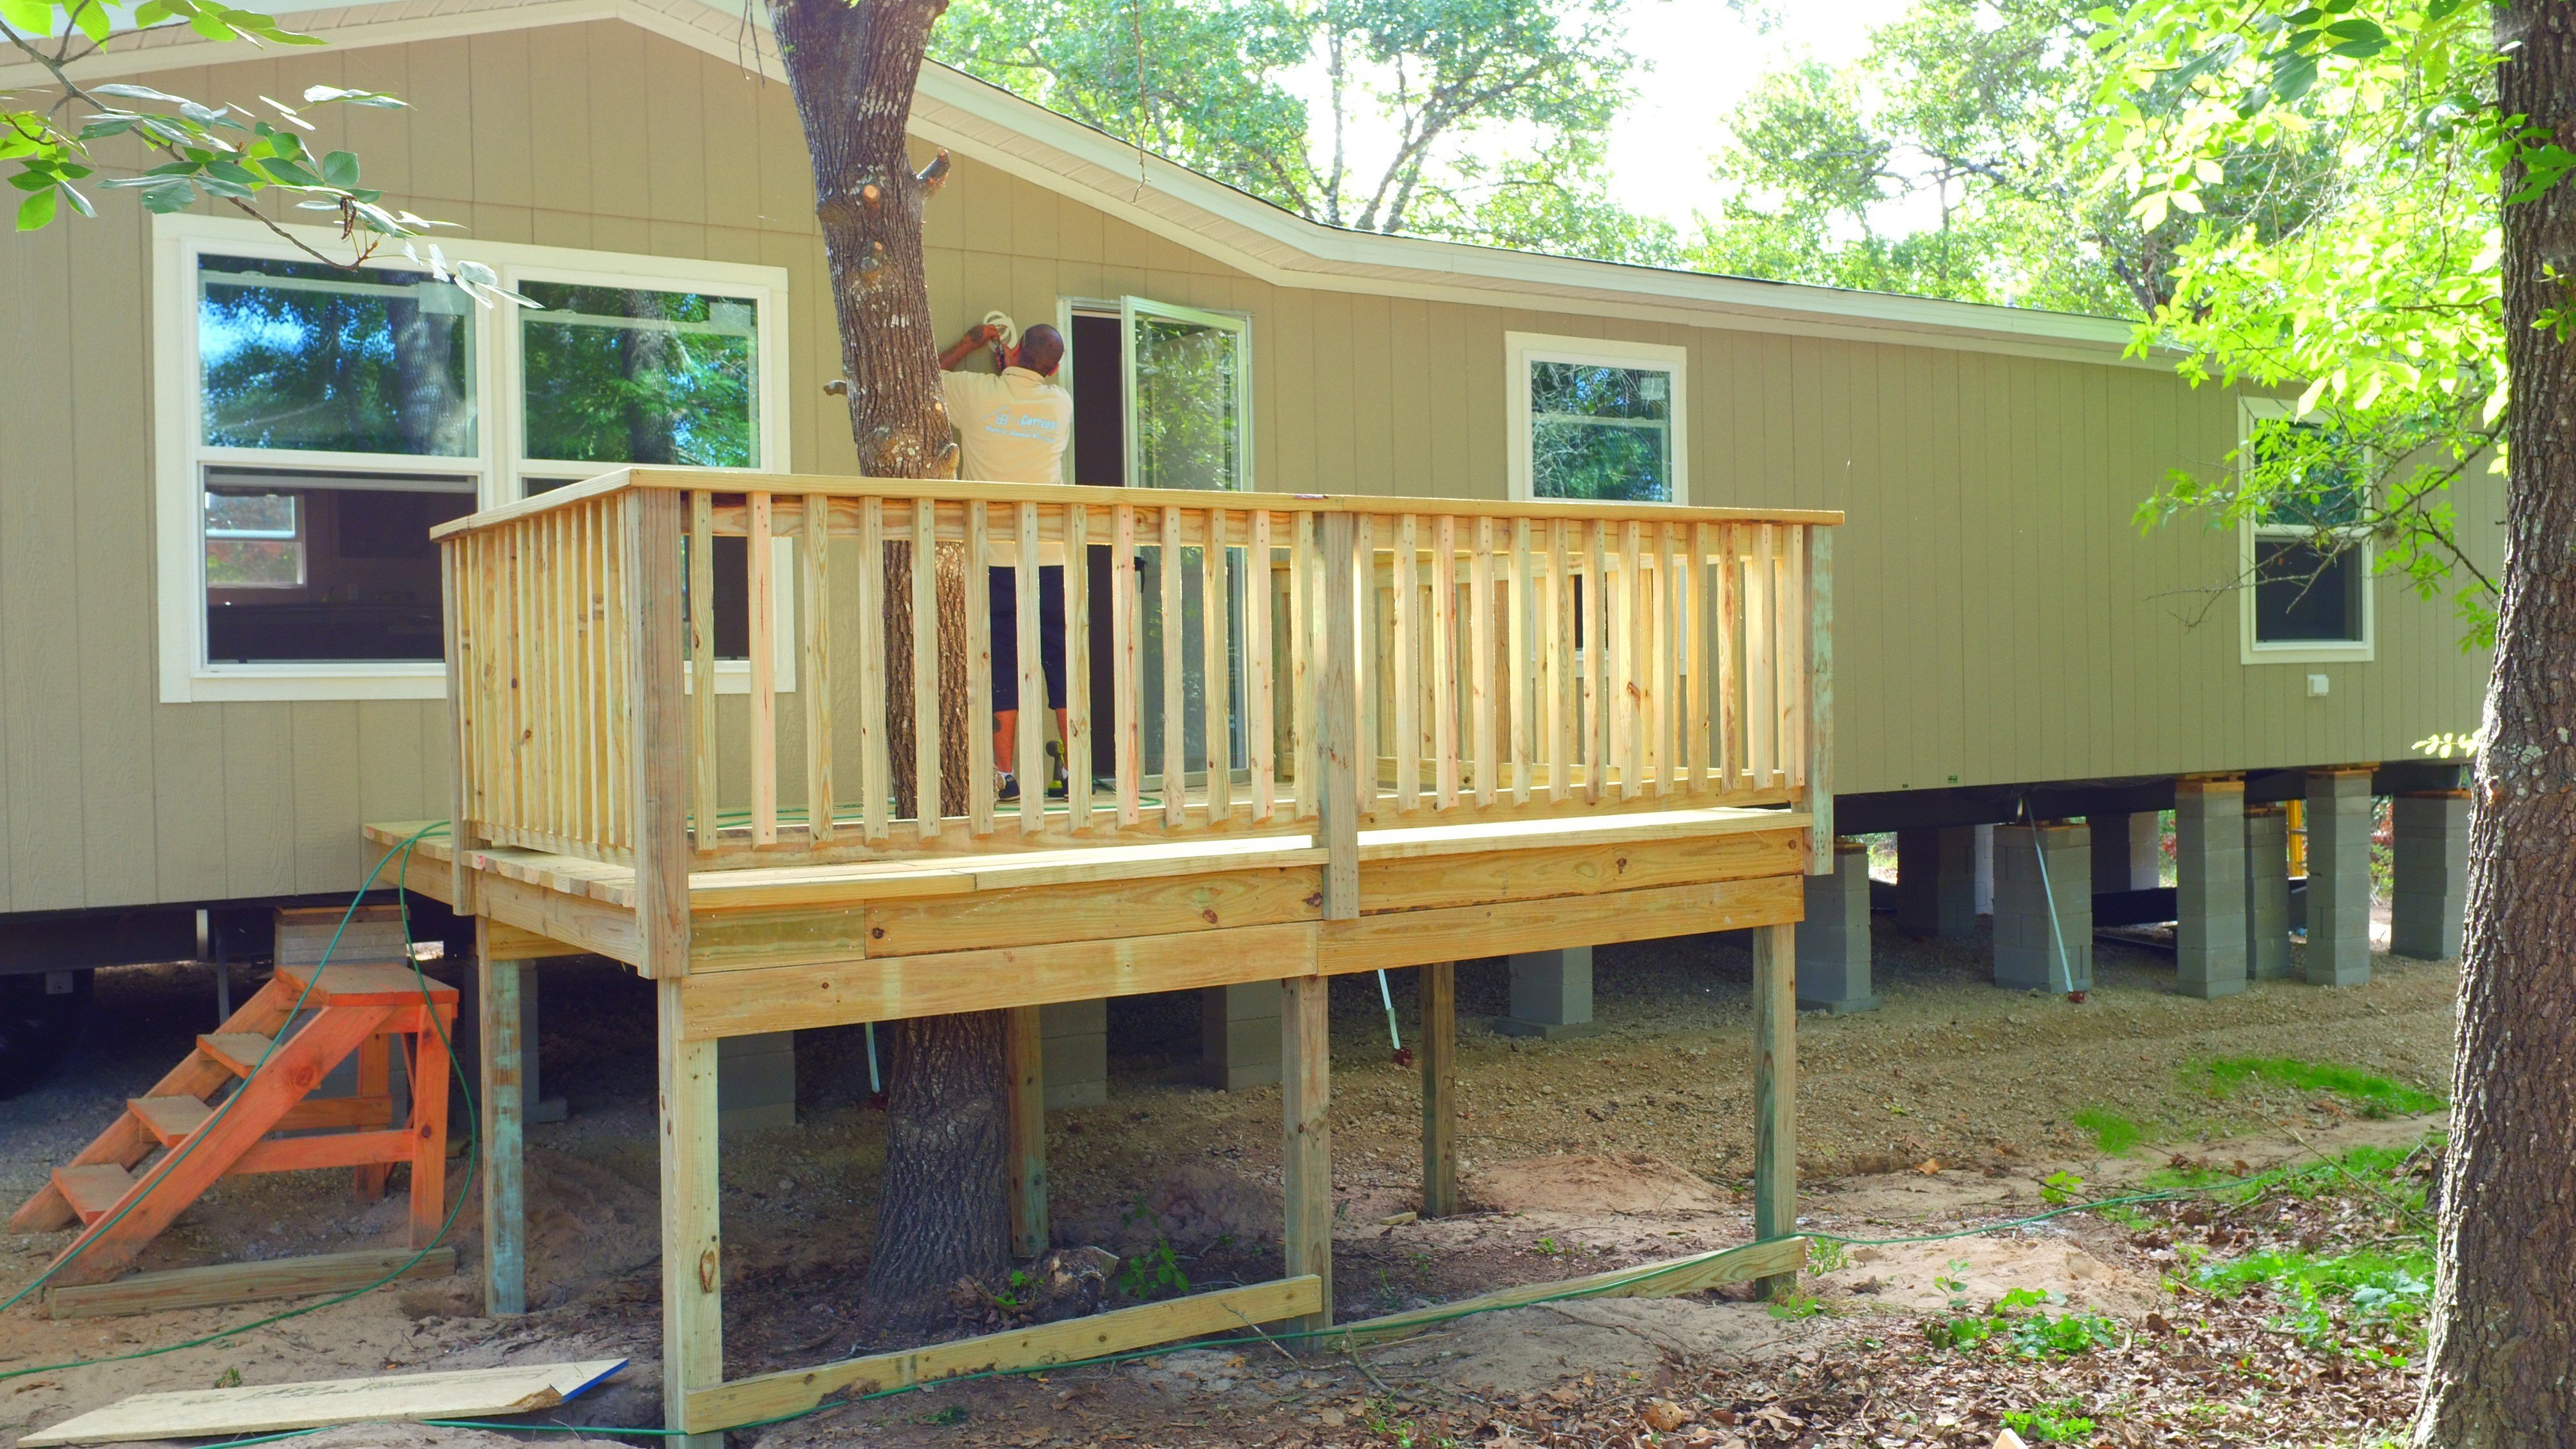 A deck or porch is a great way to increase the value of a new mobile or manufactured home.